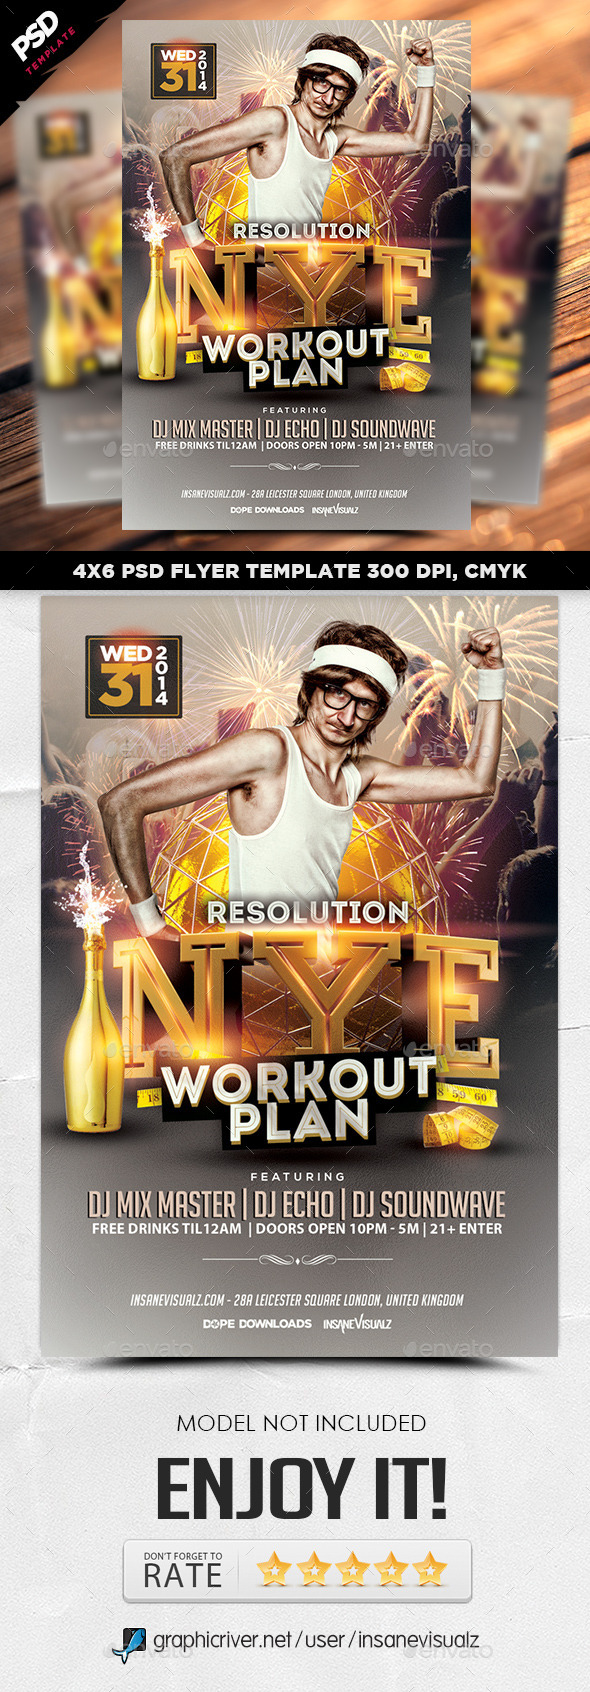 GraphicRiver NYE Resolution Workout Plan Flyer 9717979